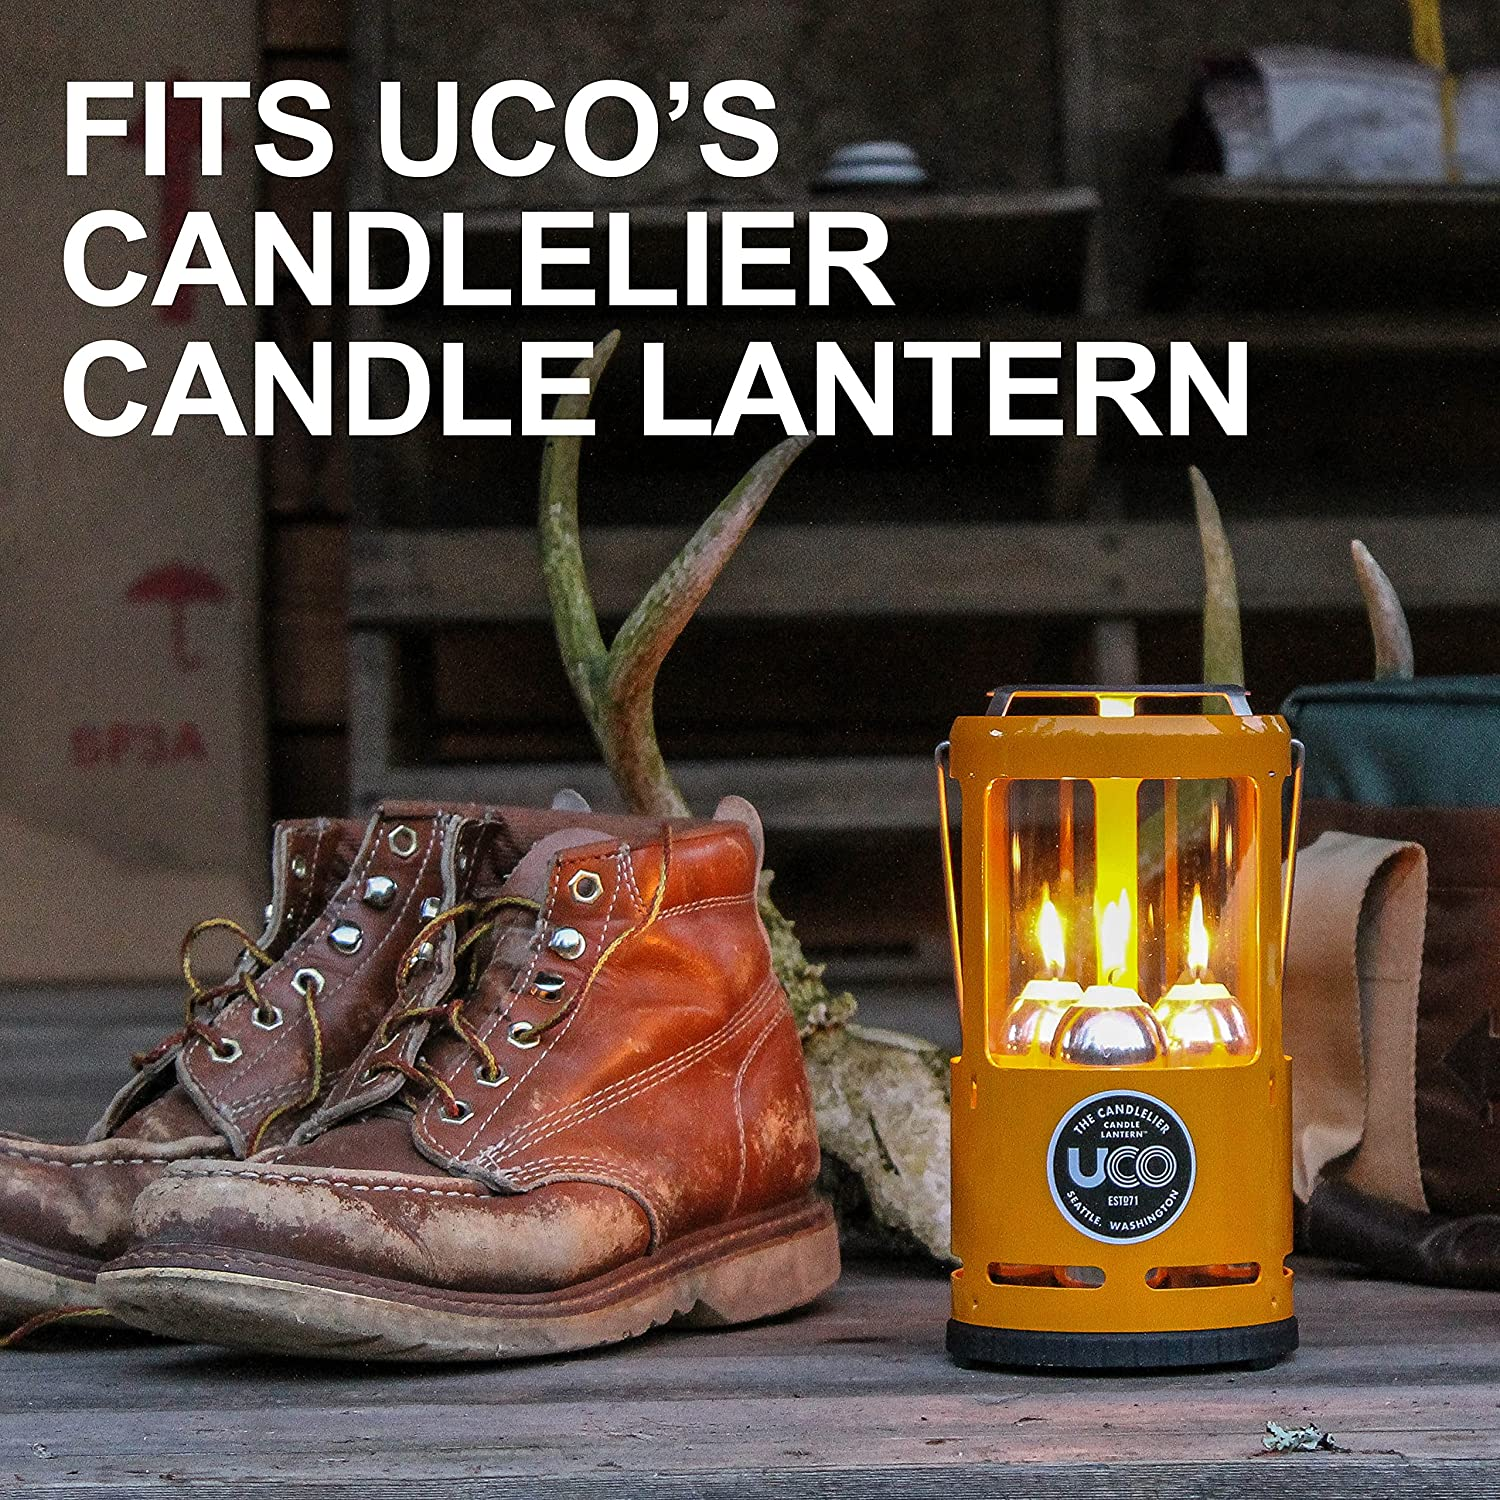 UCO 9 3.5 Inch Hour Candles for Candle Lanterns